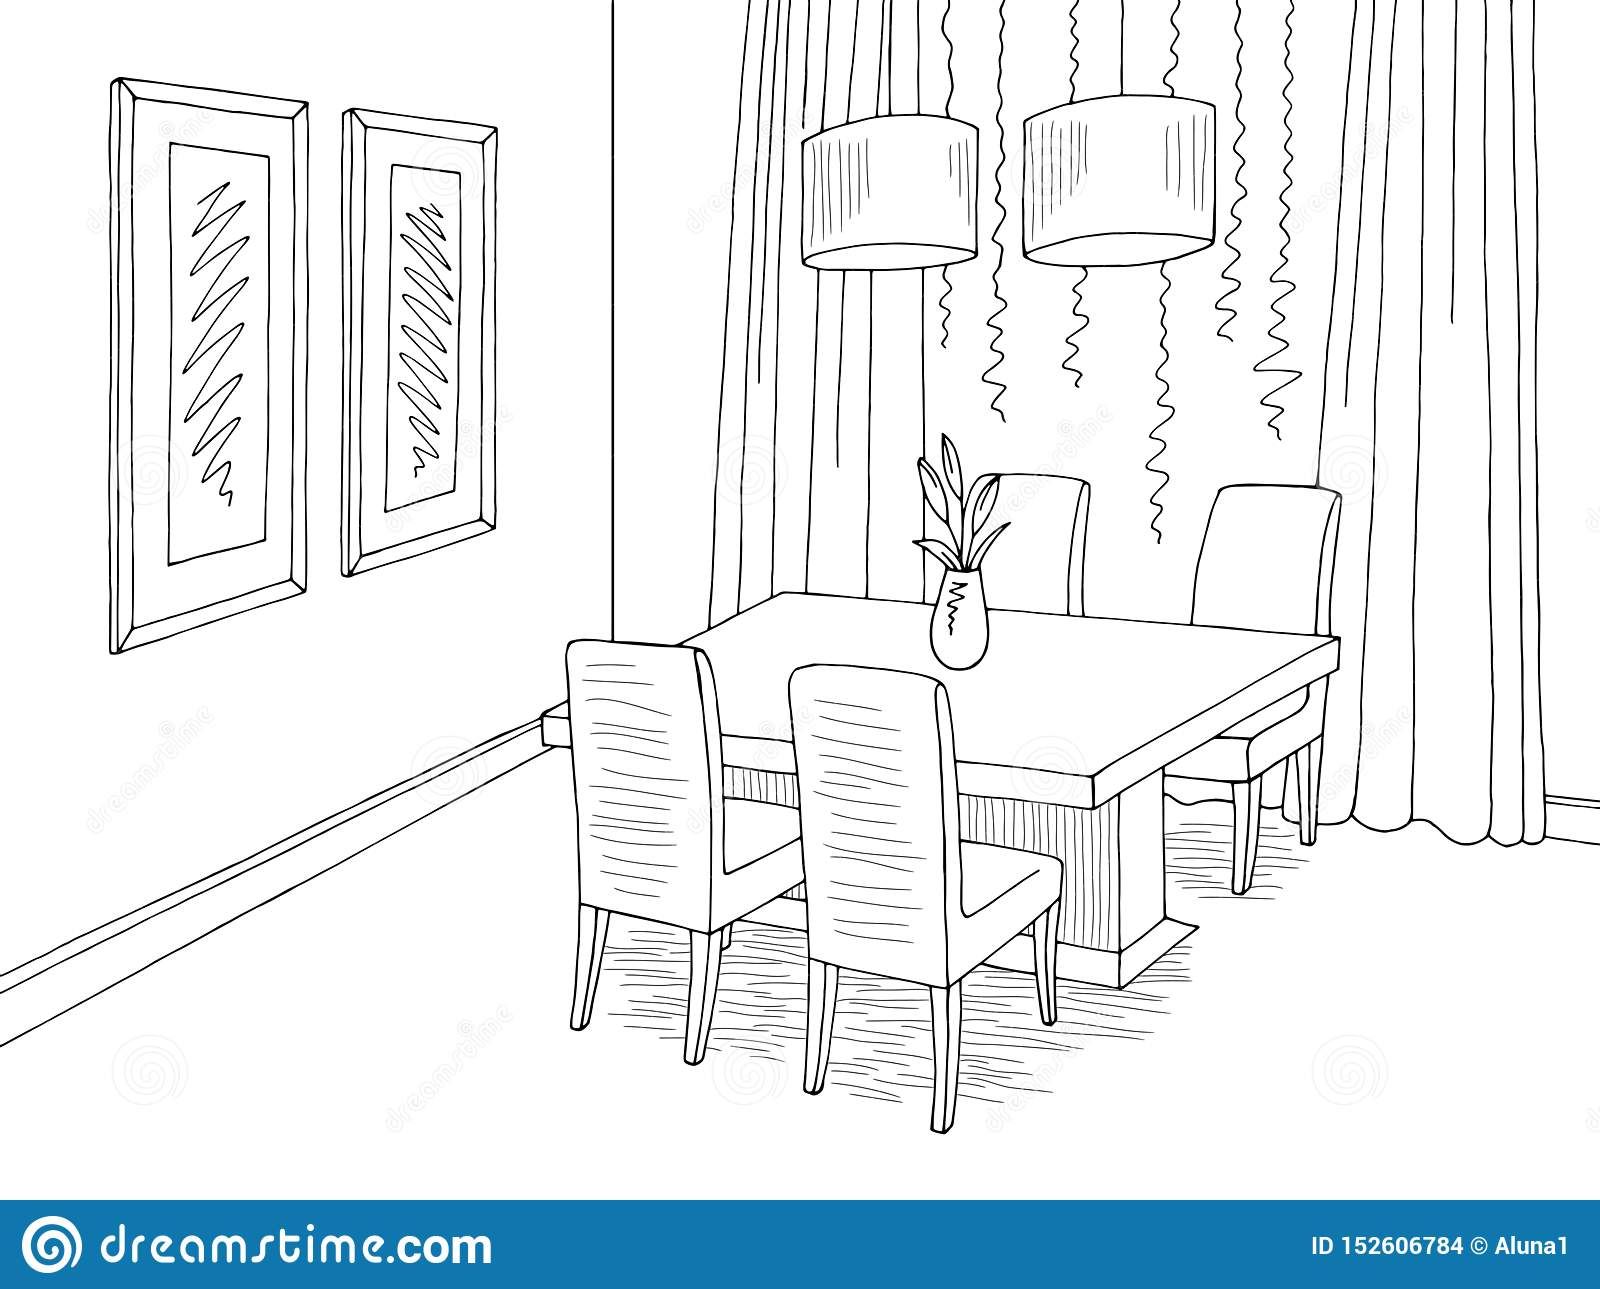 Dining Room Graphic Black White Sketch Home Interior Illustration Vector Stock Vector Illustration Of Outline Home 152606784